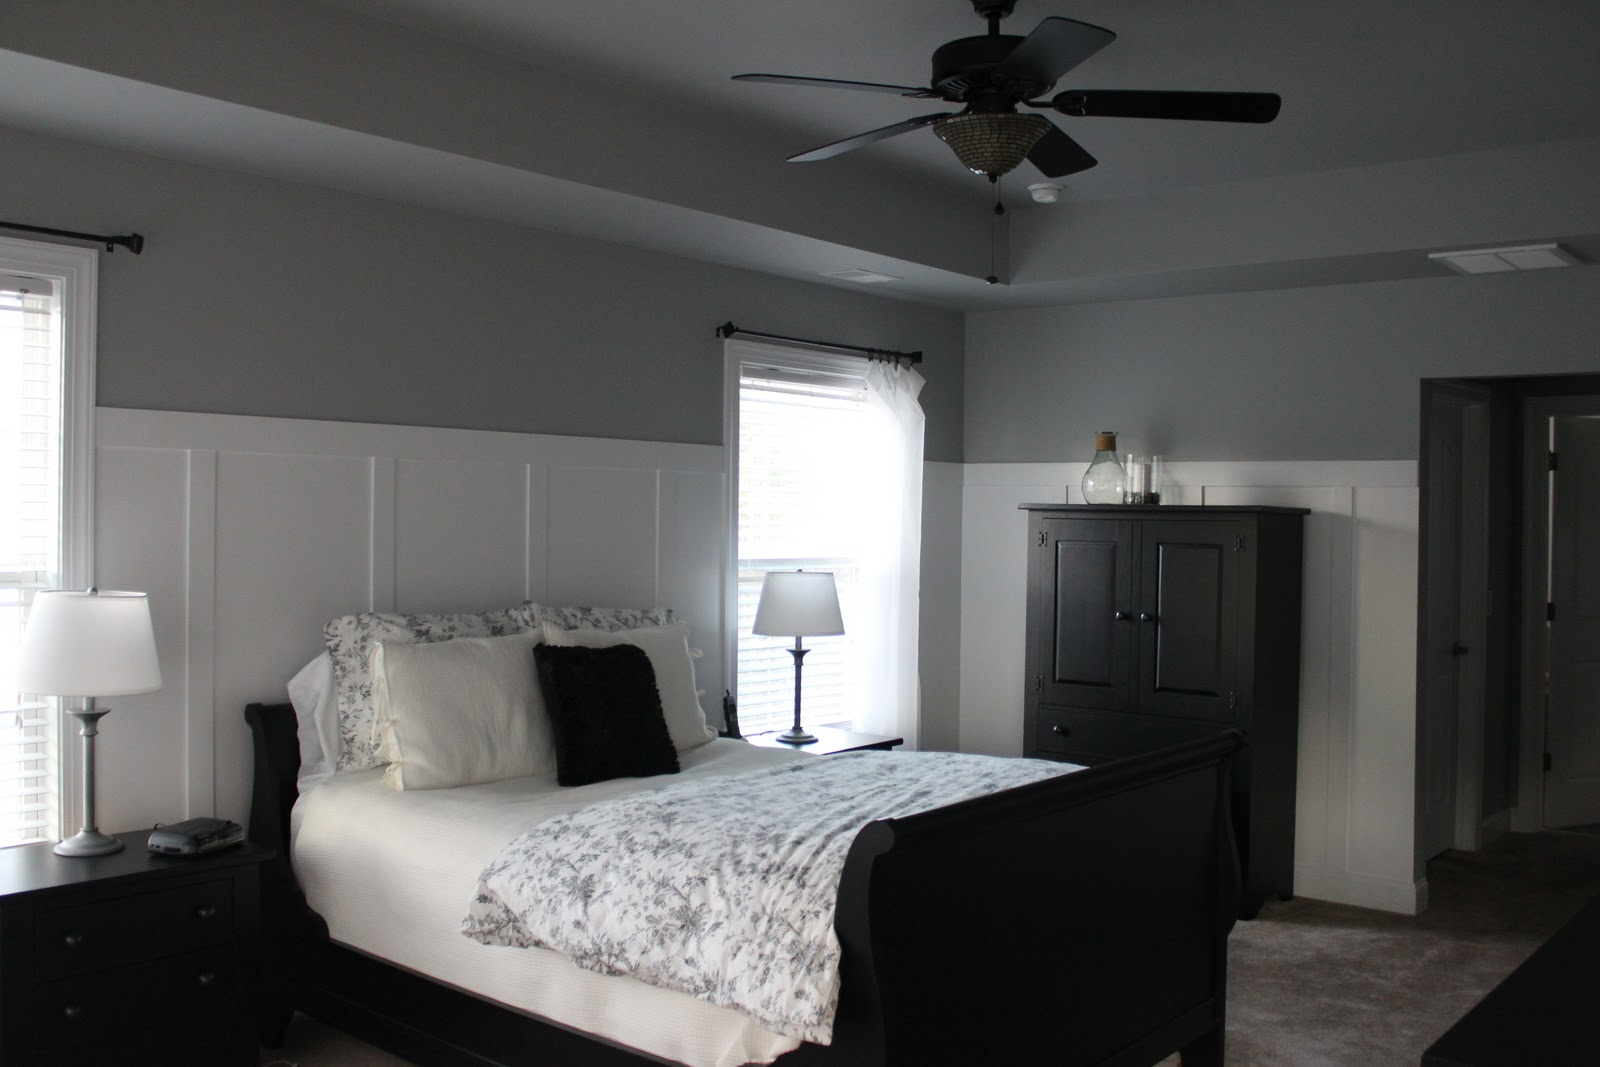 white walls grey ceiling bedroom Cents-able Spaces: Board & Batten Walls in MBR